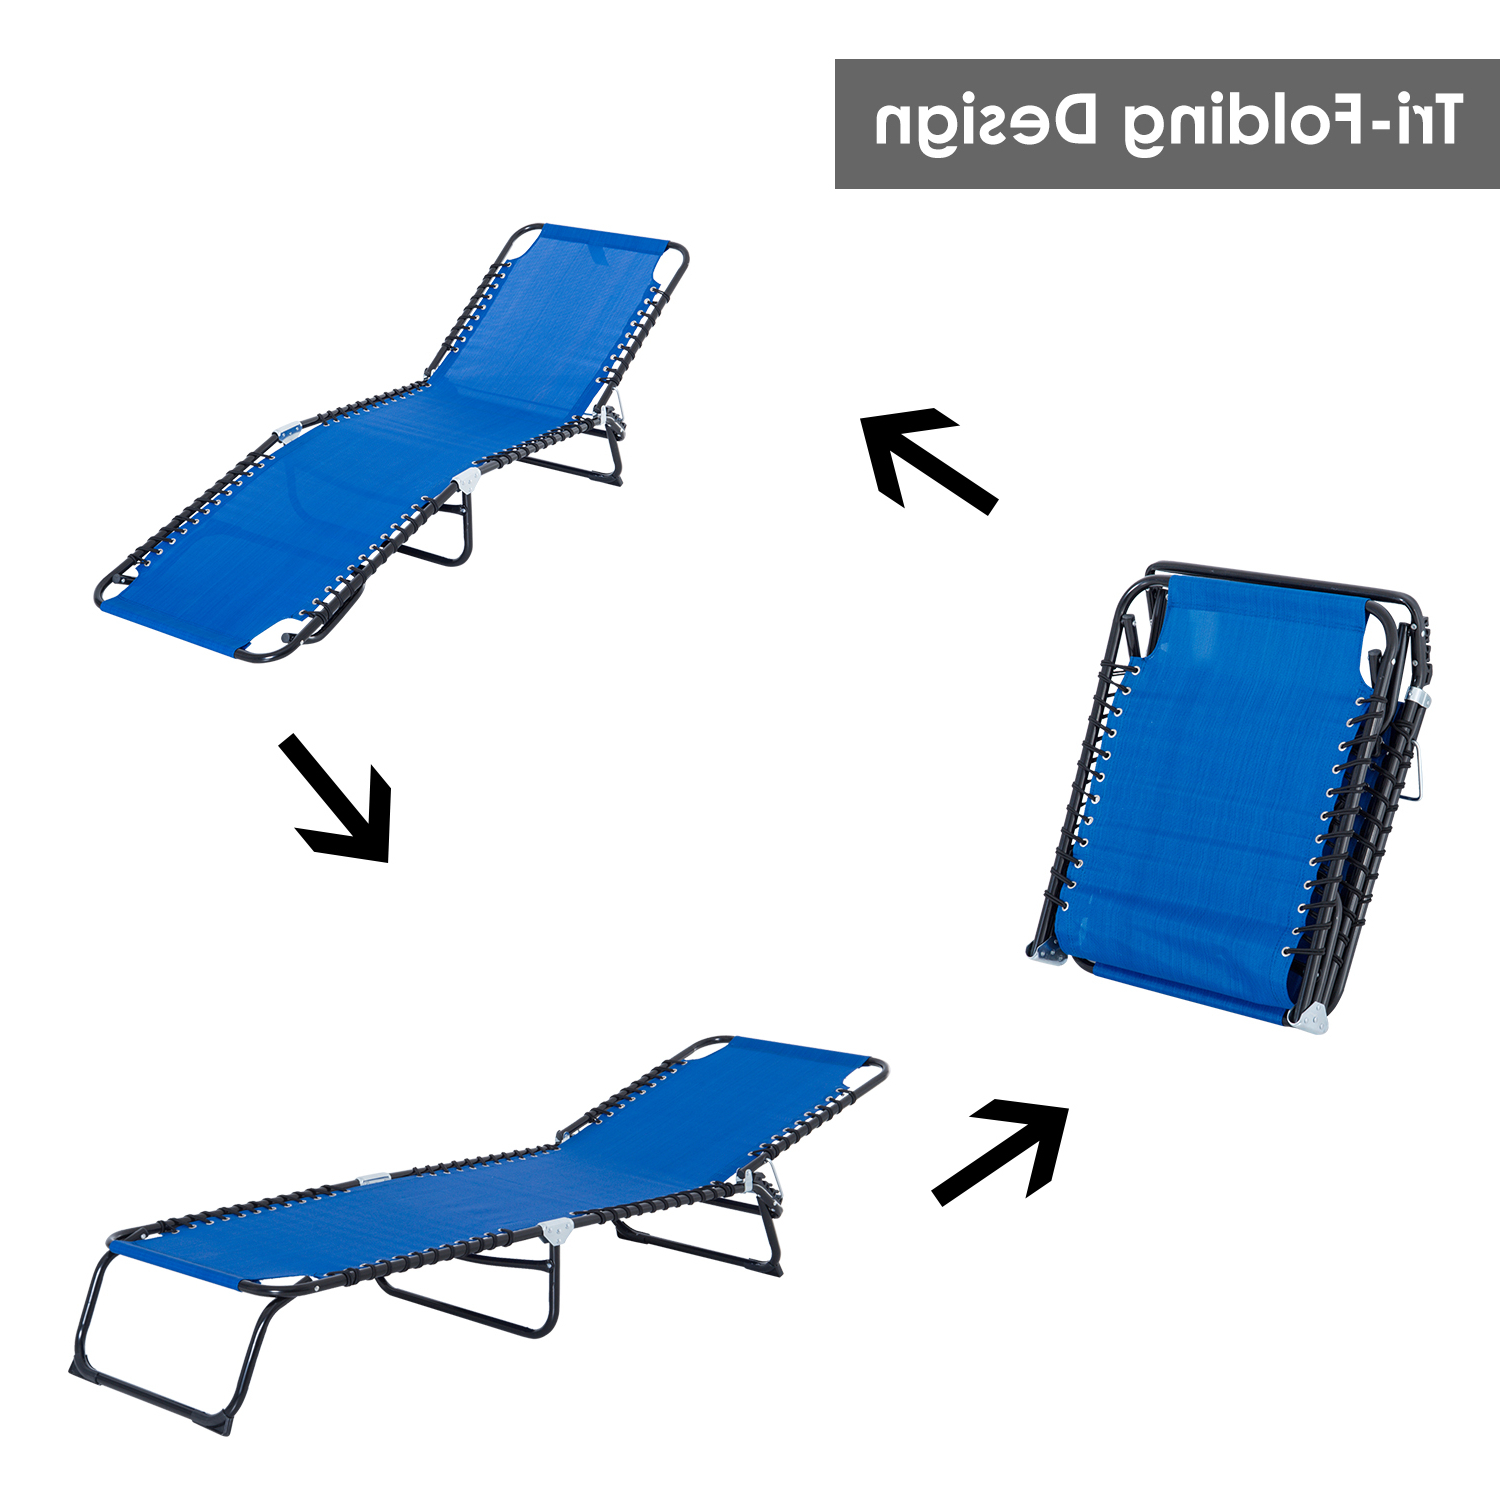 Favorite Outsunny Portable 3 Position Reclining Folding Beach Chaise Lounge Chair With Regard To 3 Position Portable Folding Reclining Beach Chaise Lounges (View 10 of 25)